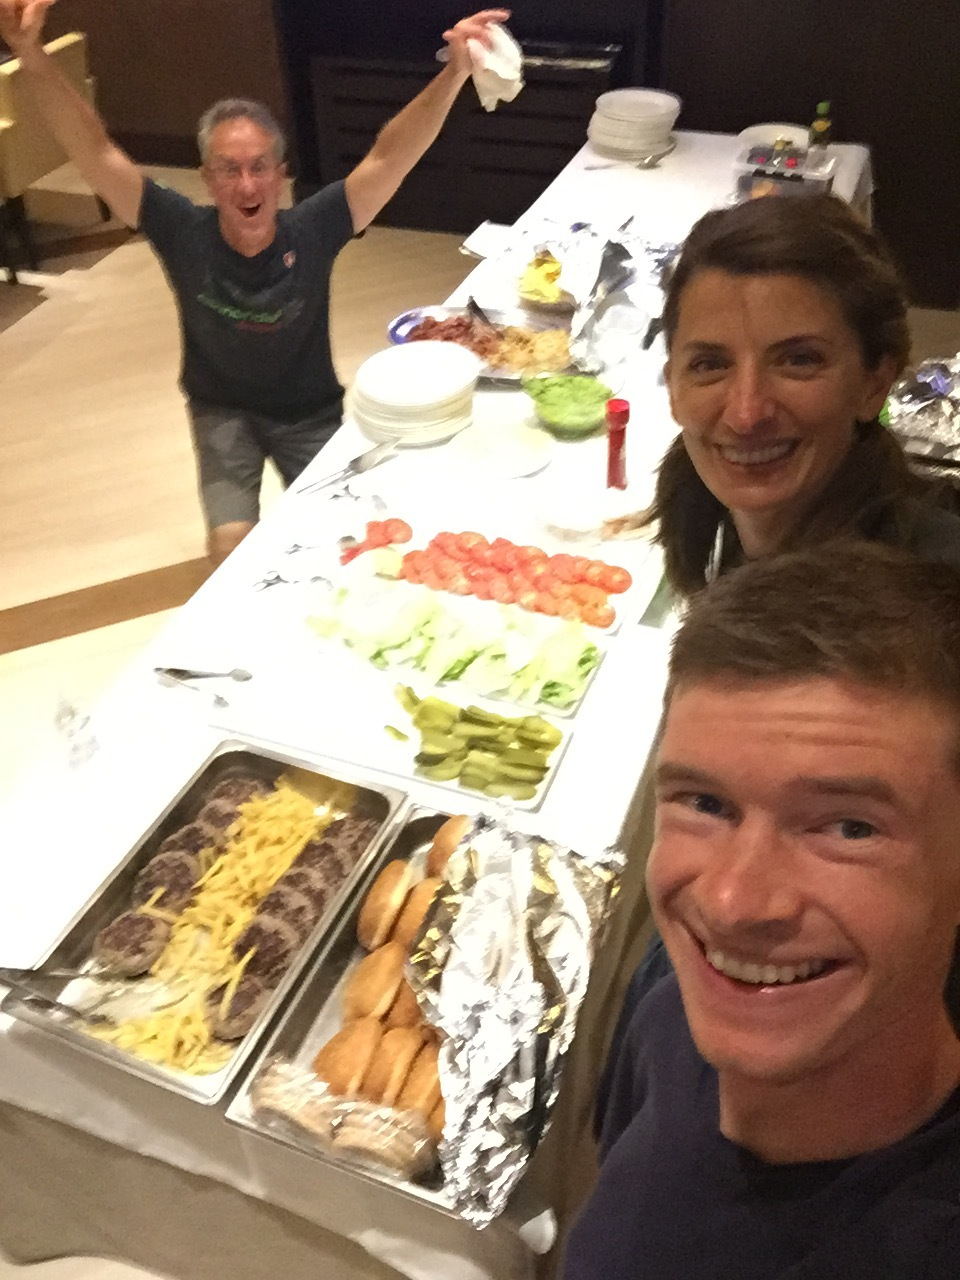 Seriously, nutrition is 80% of recovery, and our chefs Sean and Olga took amazing care of us. Traditional grand tour burger night on the penultimate stage.